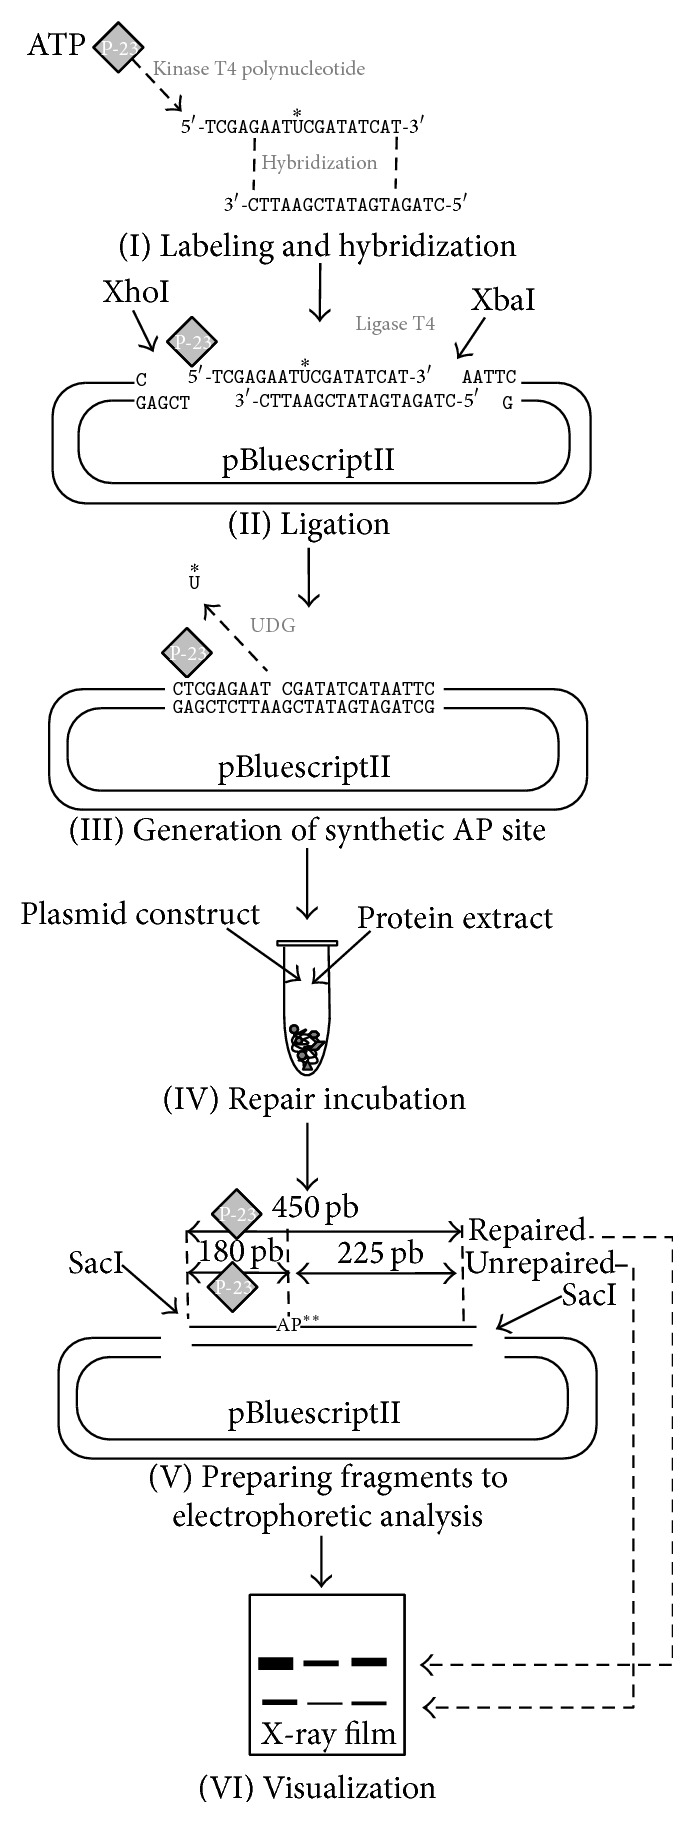 (I) A uracil-containing oligonucleotide was subjected to action of polynucleotide kinase to attach a radioactive phosphate group from [ γ - 32 P] ATP. It was hybridized with a second oligonucleotide whose sequence was adjusted to obtain sticky ends referring to XhoI and XbaI digestion site. (II) The short <t>DNA</t> fragment prepared in stage I was cloned into a pBluescriptII plasmid. (III) Uracil-DNA glycosylase was utilized to remove uracil and, as consequence, create a single gap in DNA to act as a synthetic lesion. (IV) A plasmid with single AP site constituted a substrate for the protein extract in 90-minute repair incubation. (V) Two <t>SacI</t> recognition sites of the pBluescriptII plasmid were used to excise 450 pb-long fragment covering the lesion site and radioactive label for analysis on 8% urea/acrylamide gel. (VI) Interpretation of outcomes was based on detection of two bands. The full-length 450 pb fragment reflects restored DNA fraction, whereas presence of short 180 pb fraction indicates the amount of unrepaired DNA. ∗ U: uracil; ∗∗ AP: apurinic/apyrimidinic.